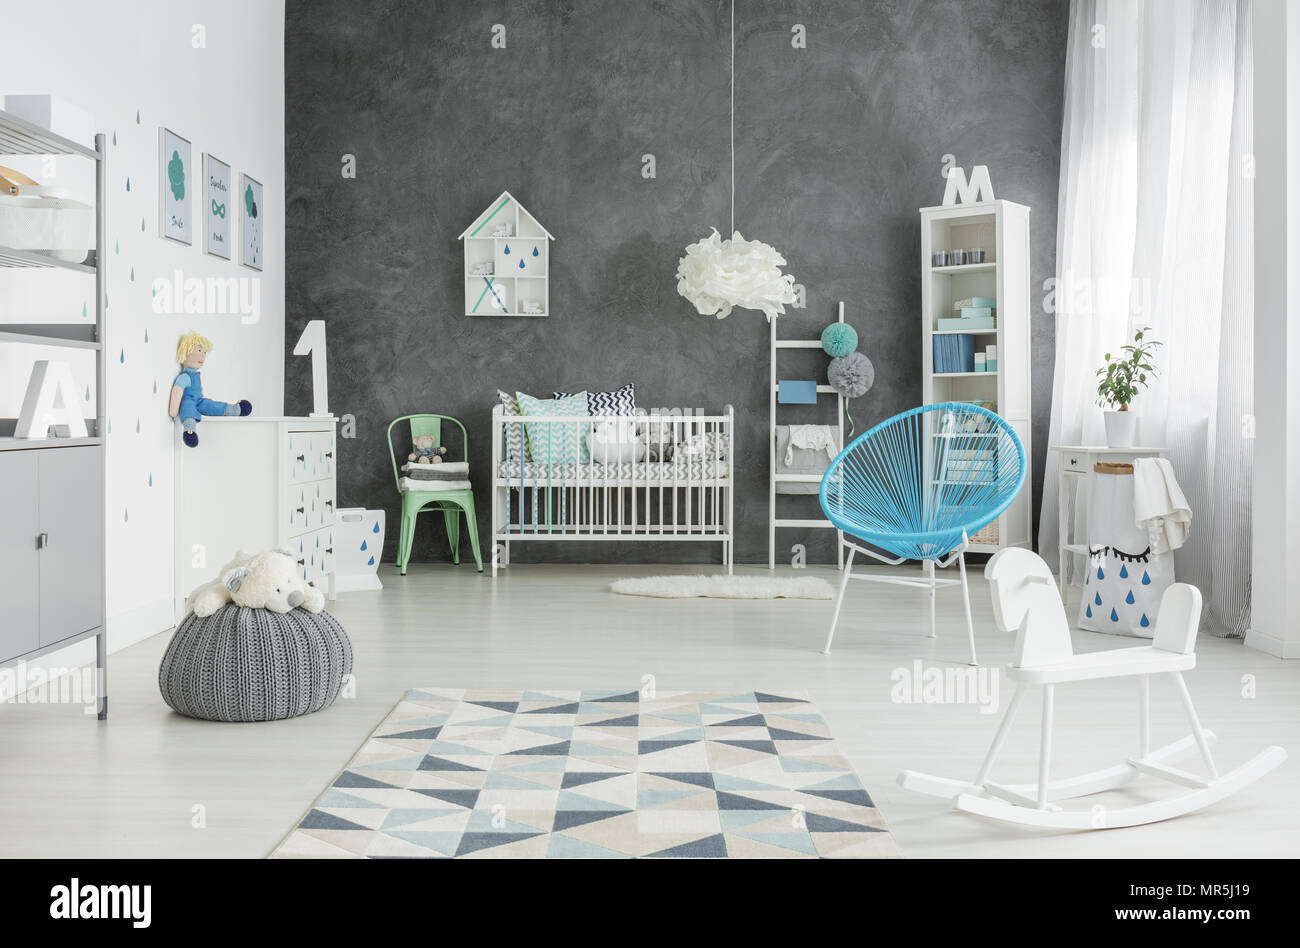 Scandi Style Spacious Child Room With Cot Bookshelf And Dresser